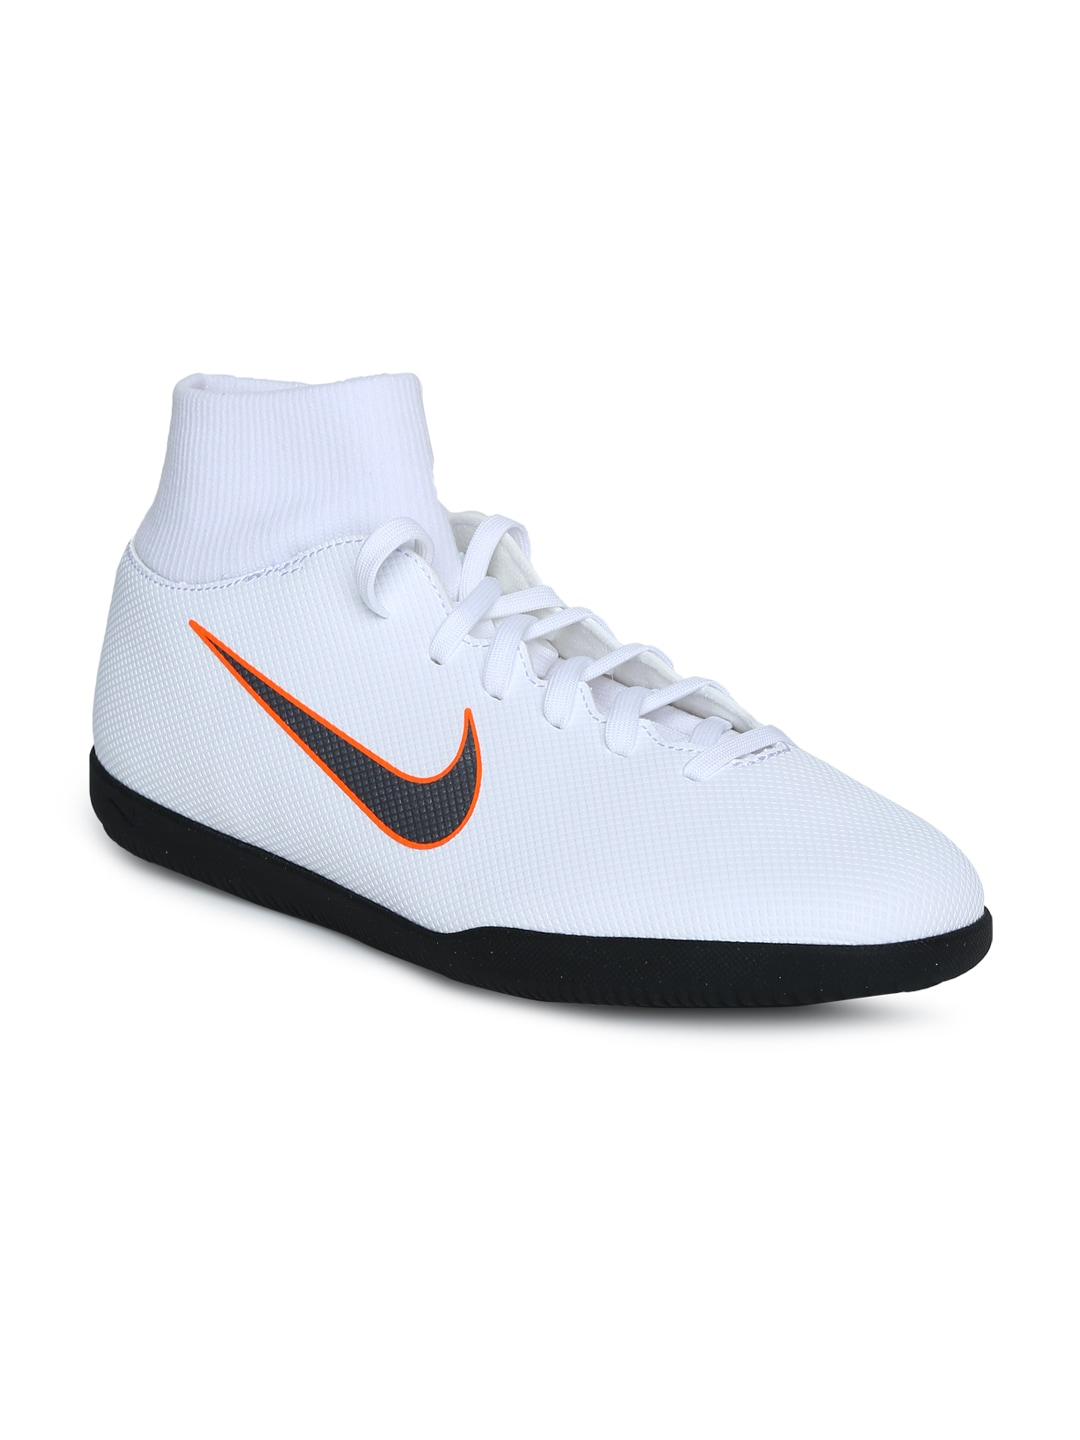 c7354273e562ab Nike Sport Shoe - Buy Nike Sport Shoes At Best Price Online